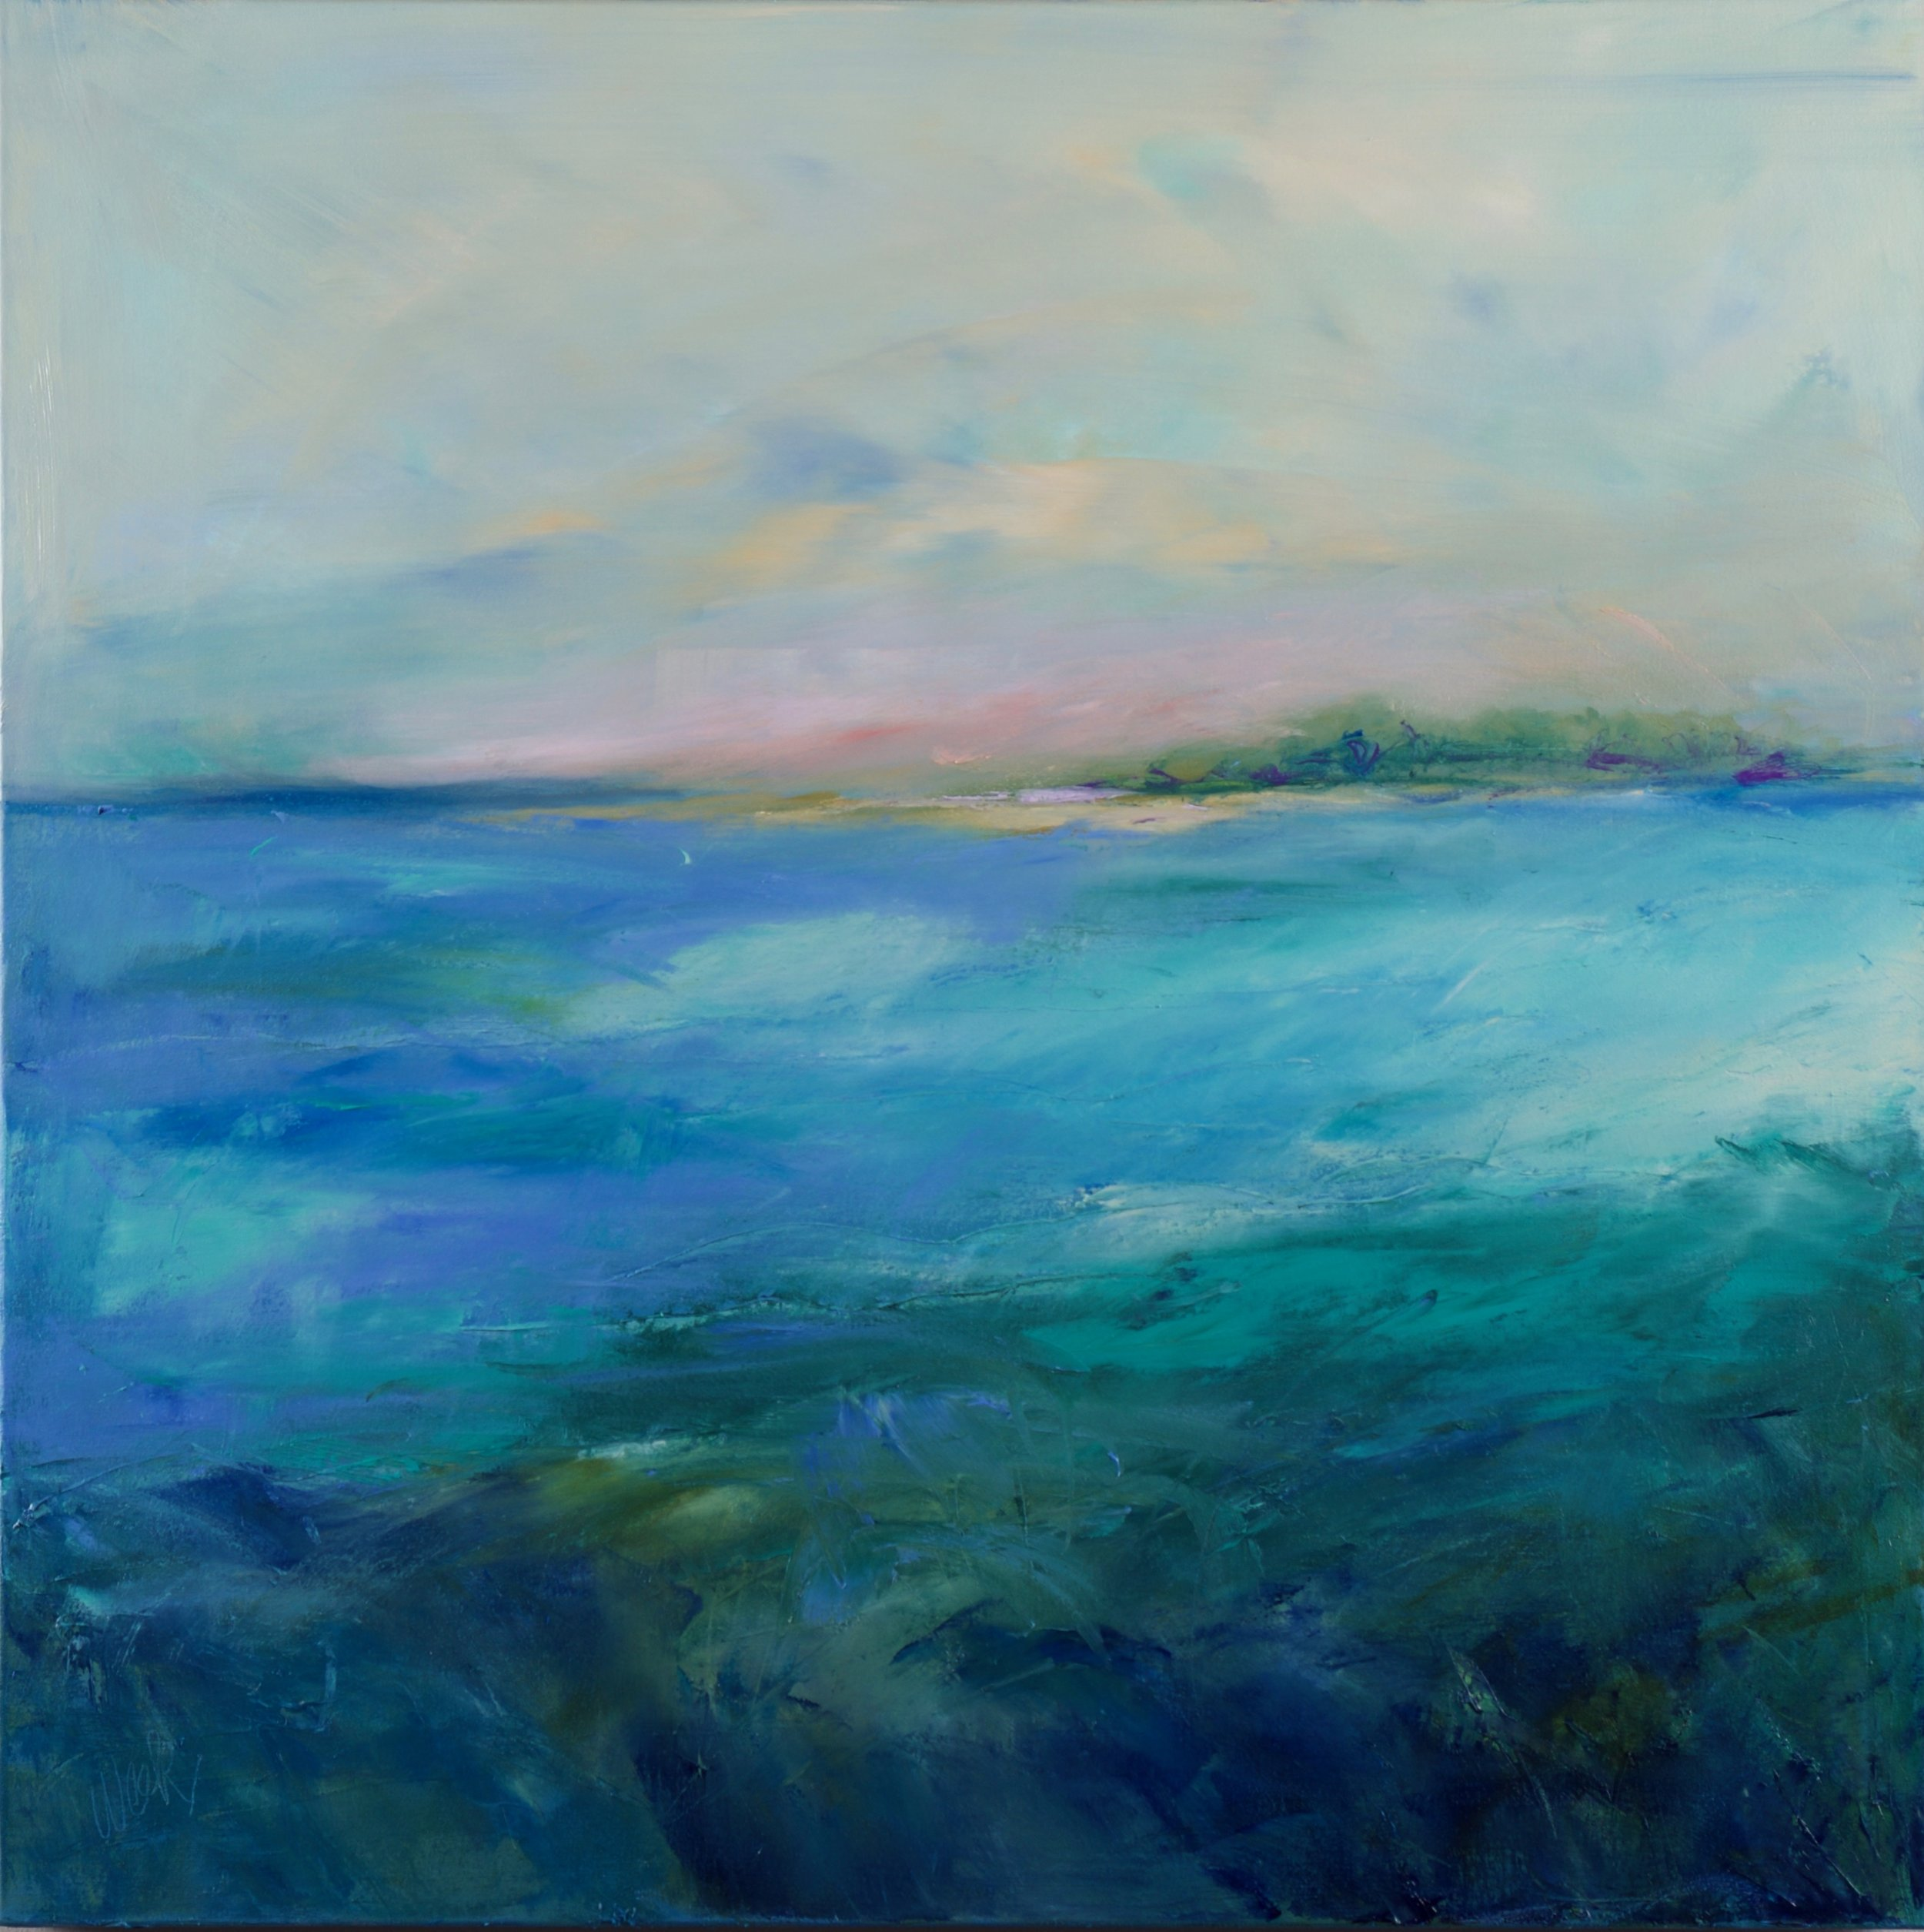 """Carolina Blue"" - 36 x 36 inches"